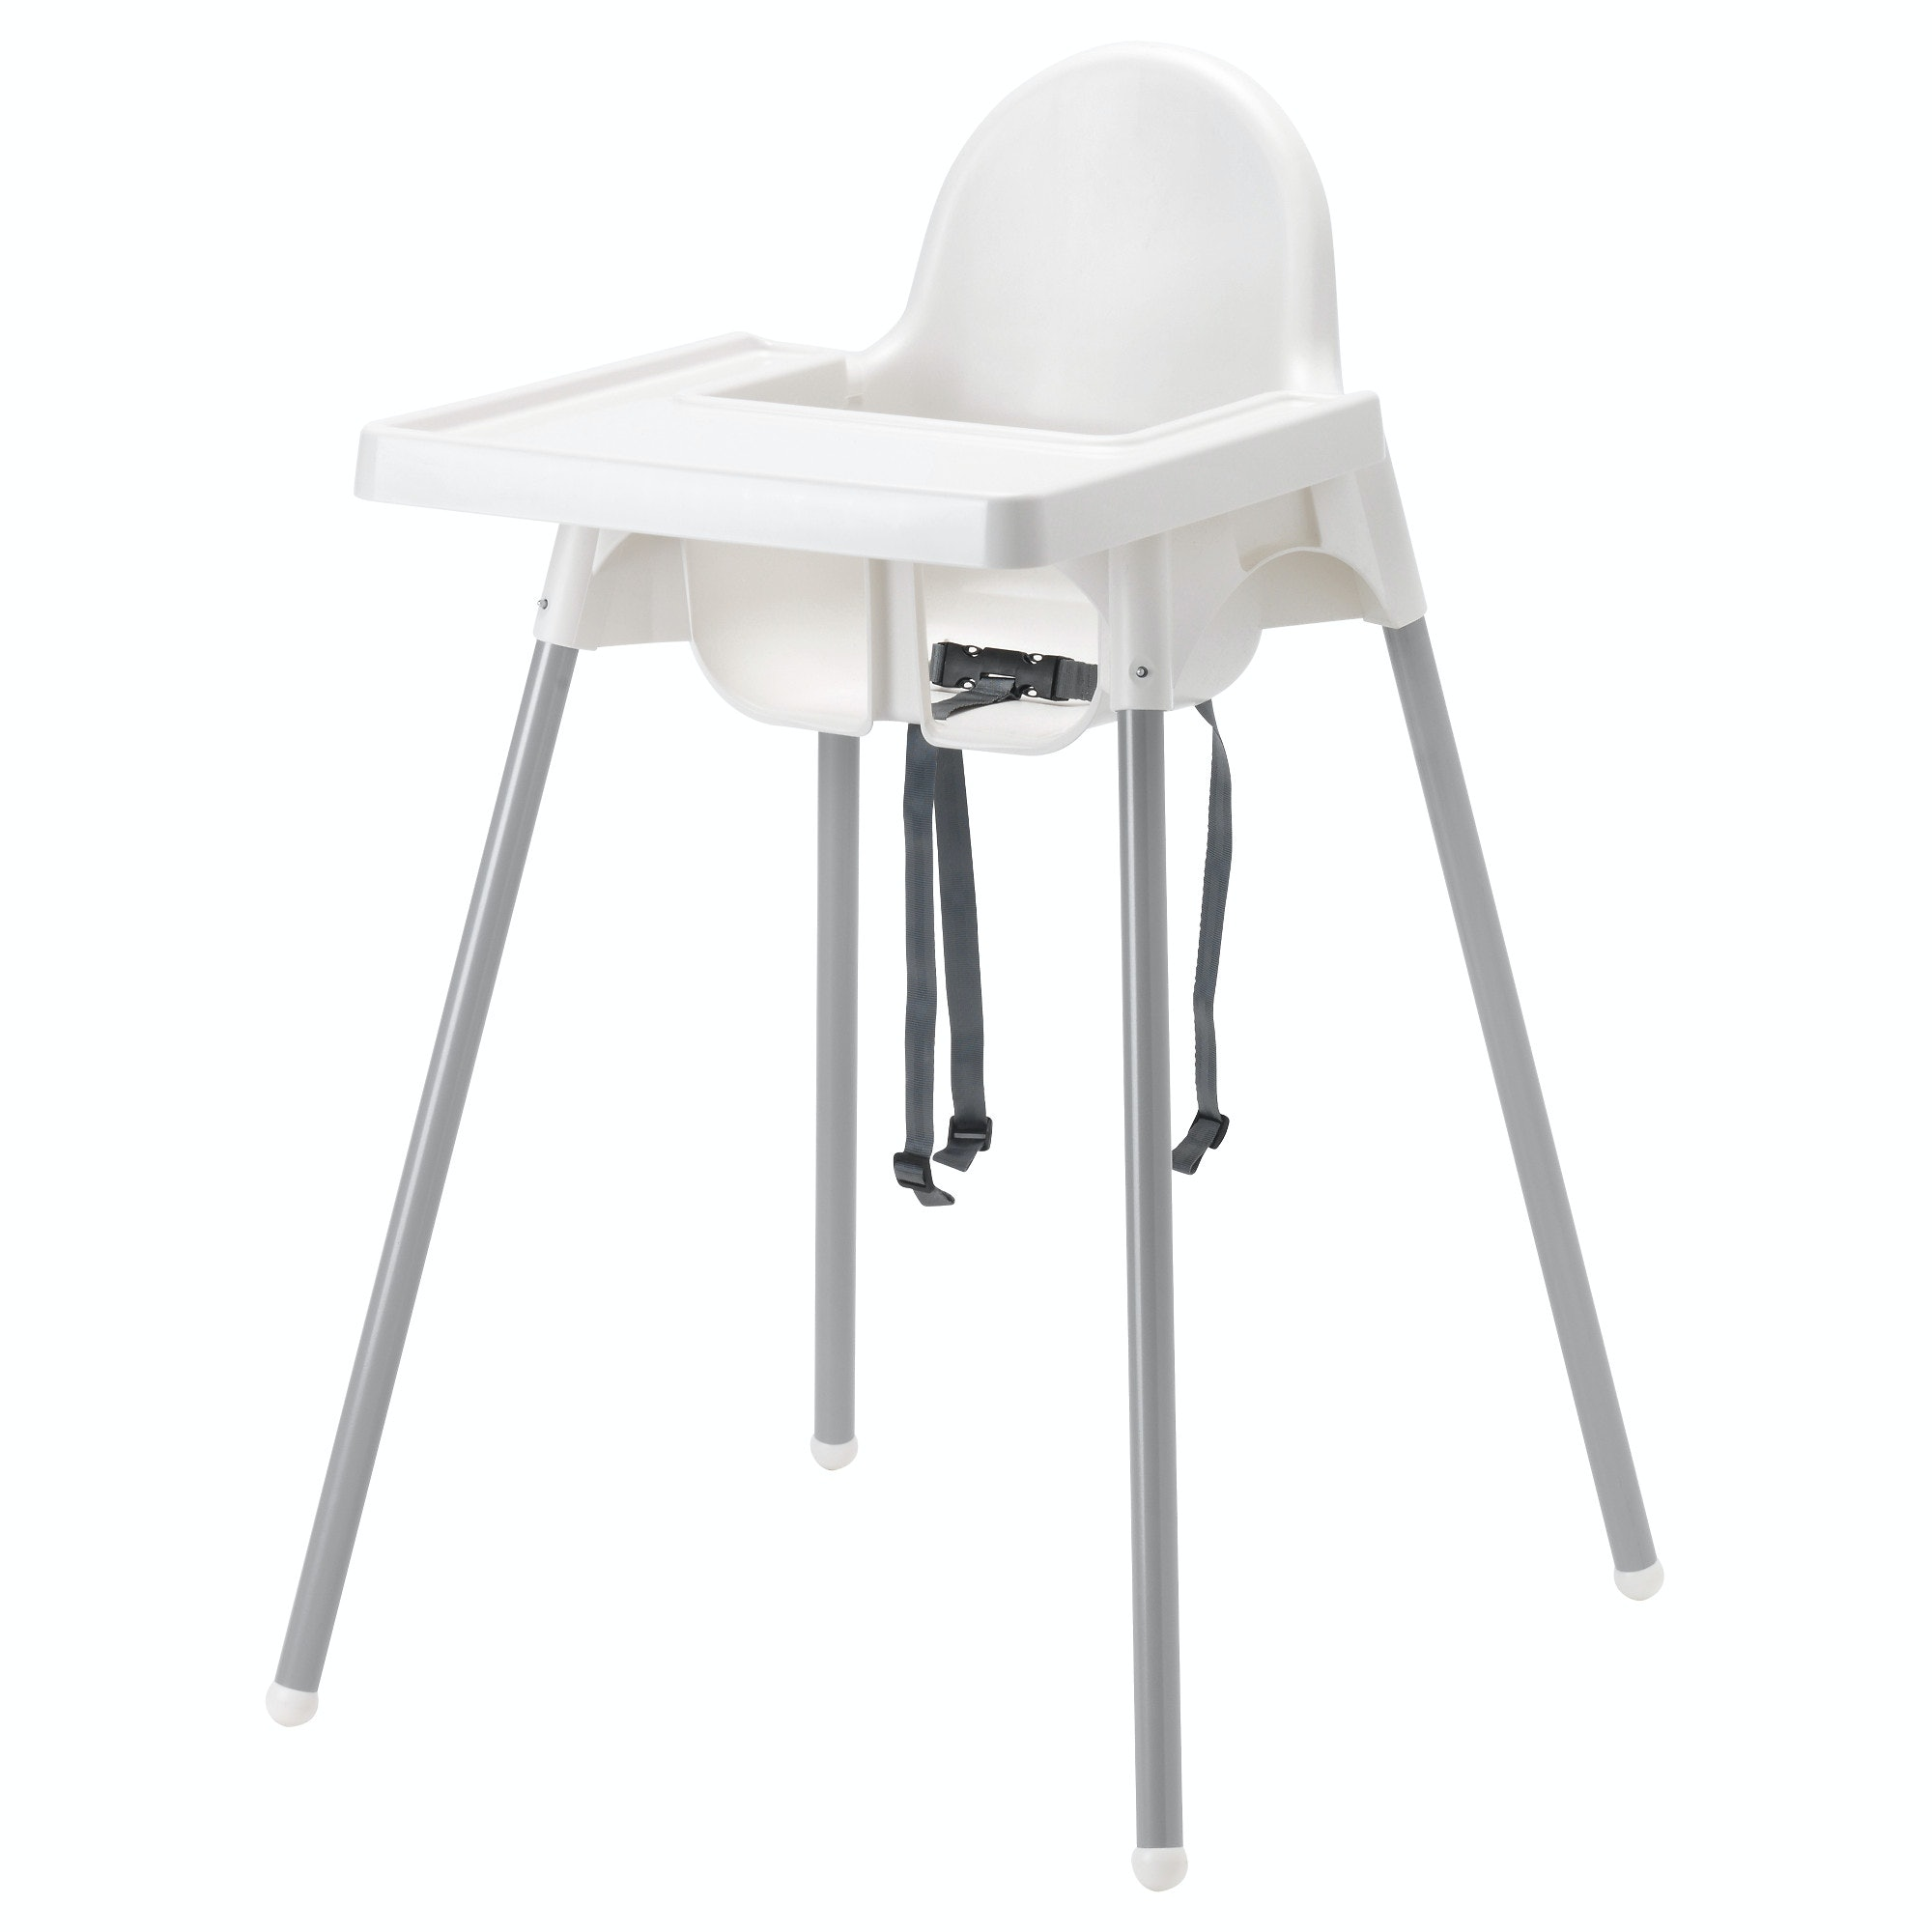 Dishwasher Safe High Chairs Are Real & IKEA Has Just The e You re